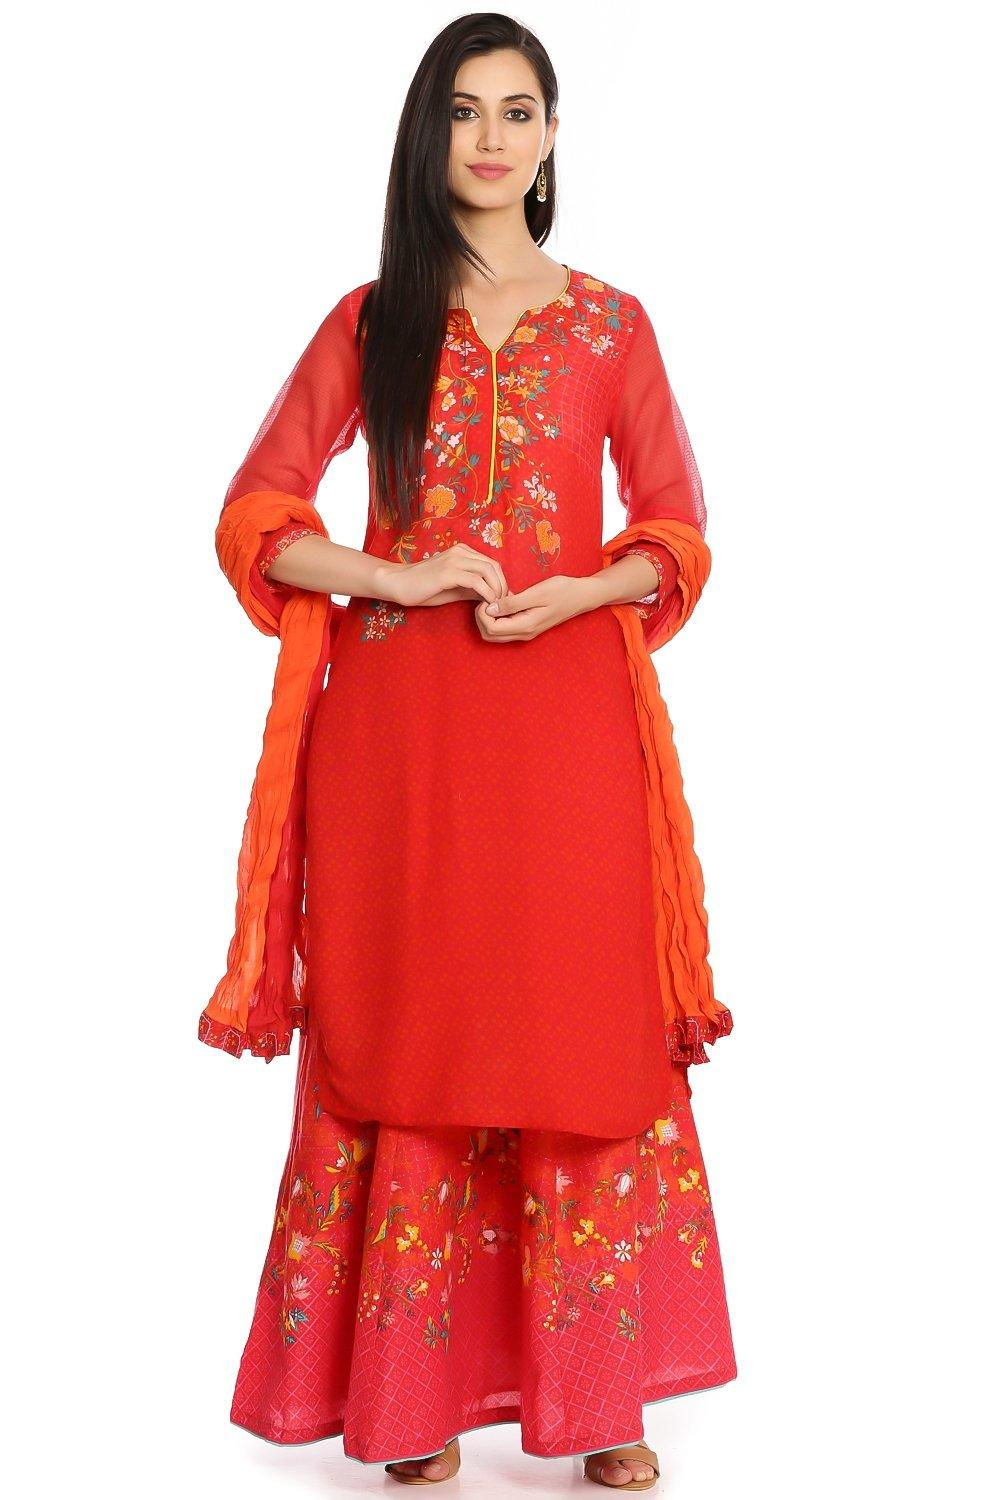 Red Cotton Straight Kurta - ENCHANTE12551RED